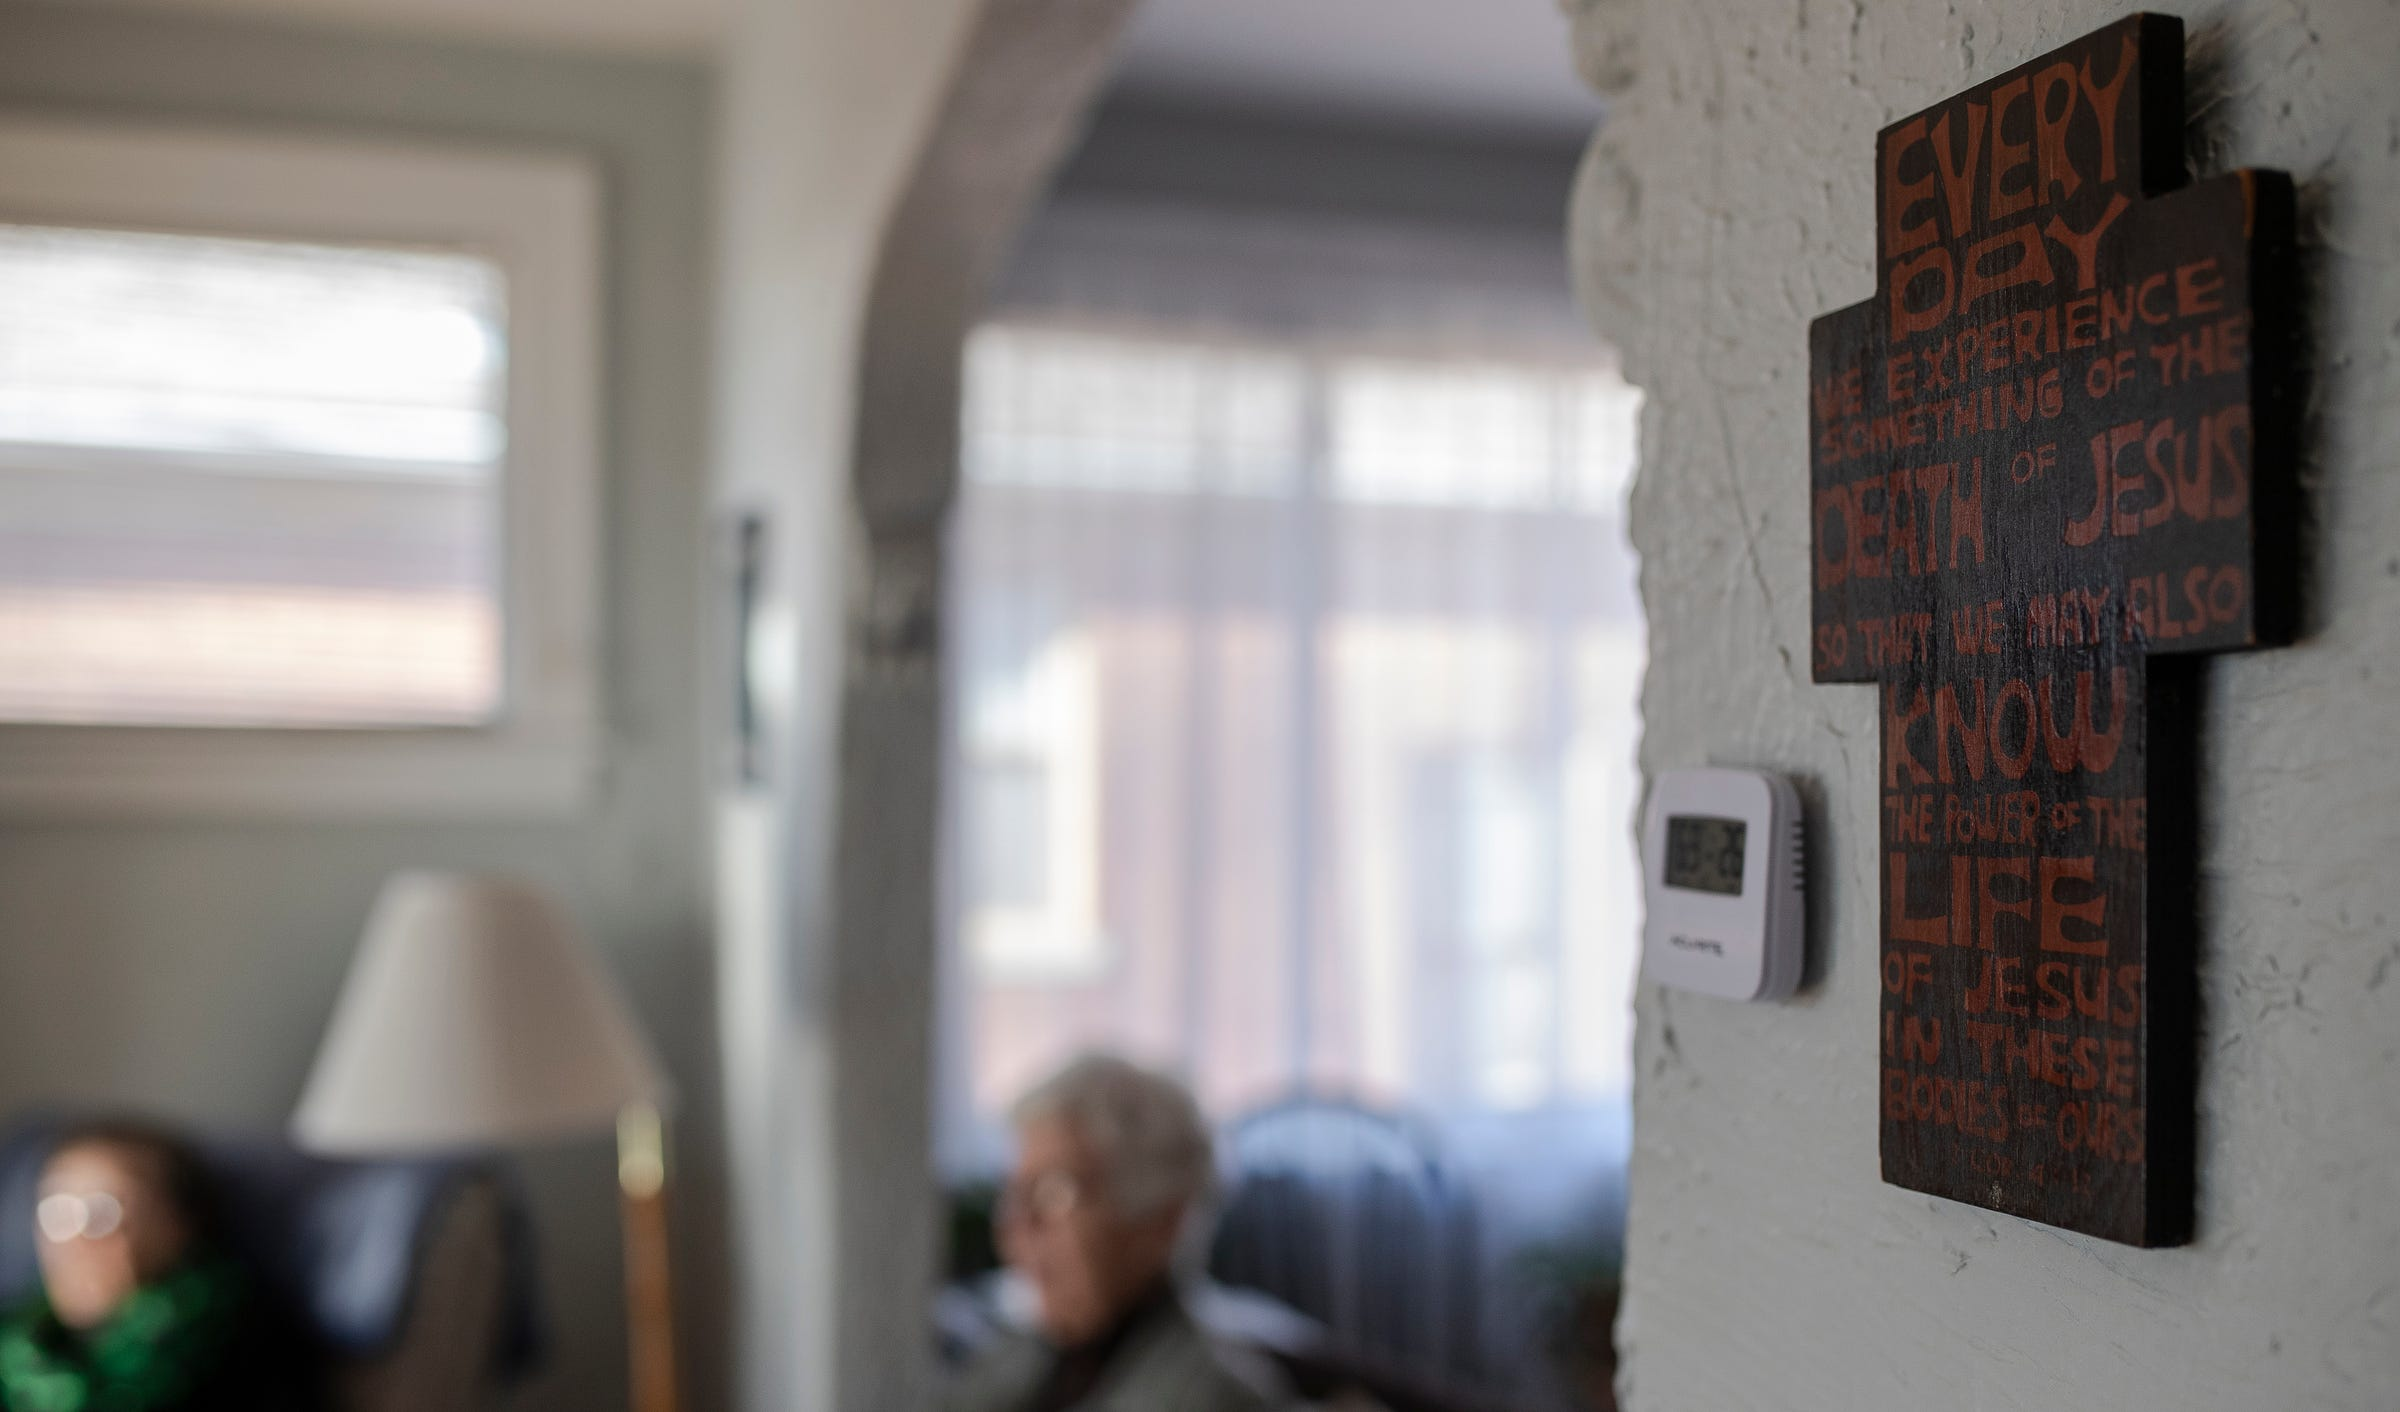 Sister Jeanne Gamache, left, and Sister Marie Benzing pray together to celebrate Saint Joseph's Day at Sister Erin McDonald and Sister Marcella Clancy's apartment in Detroit on March 19, 2021.